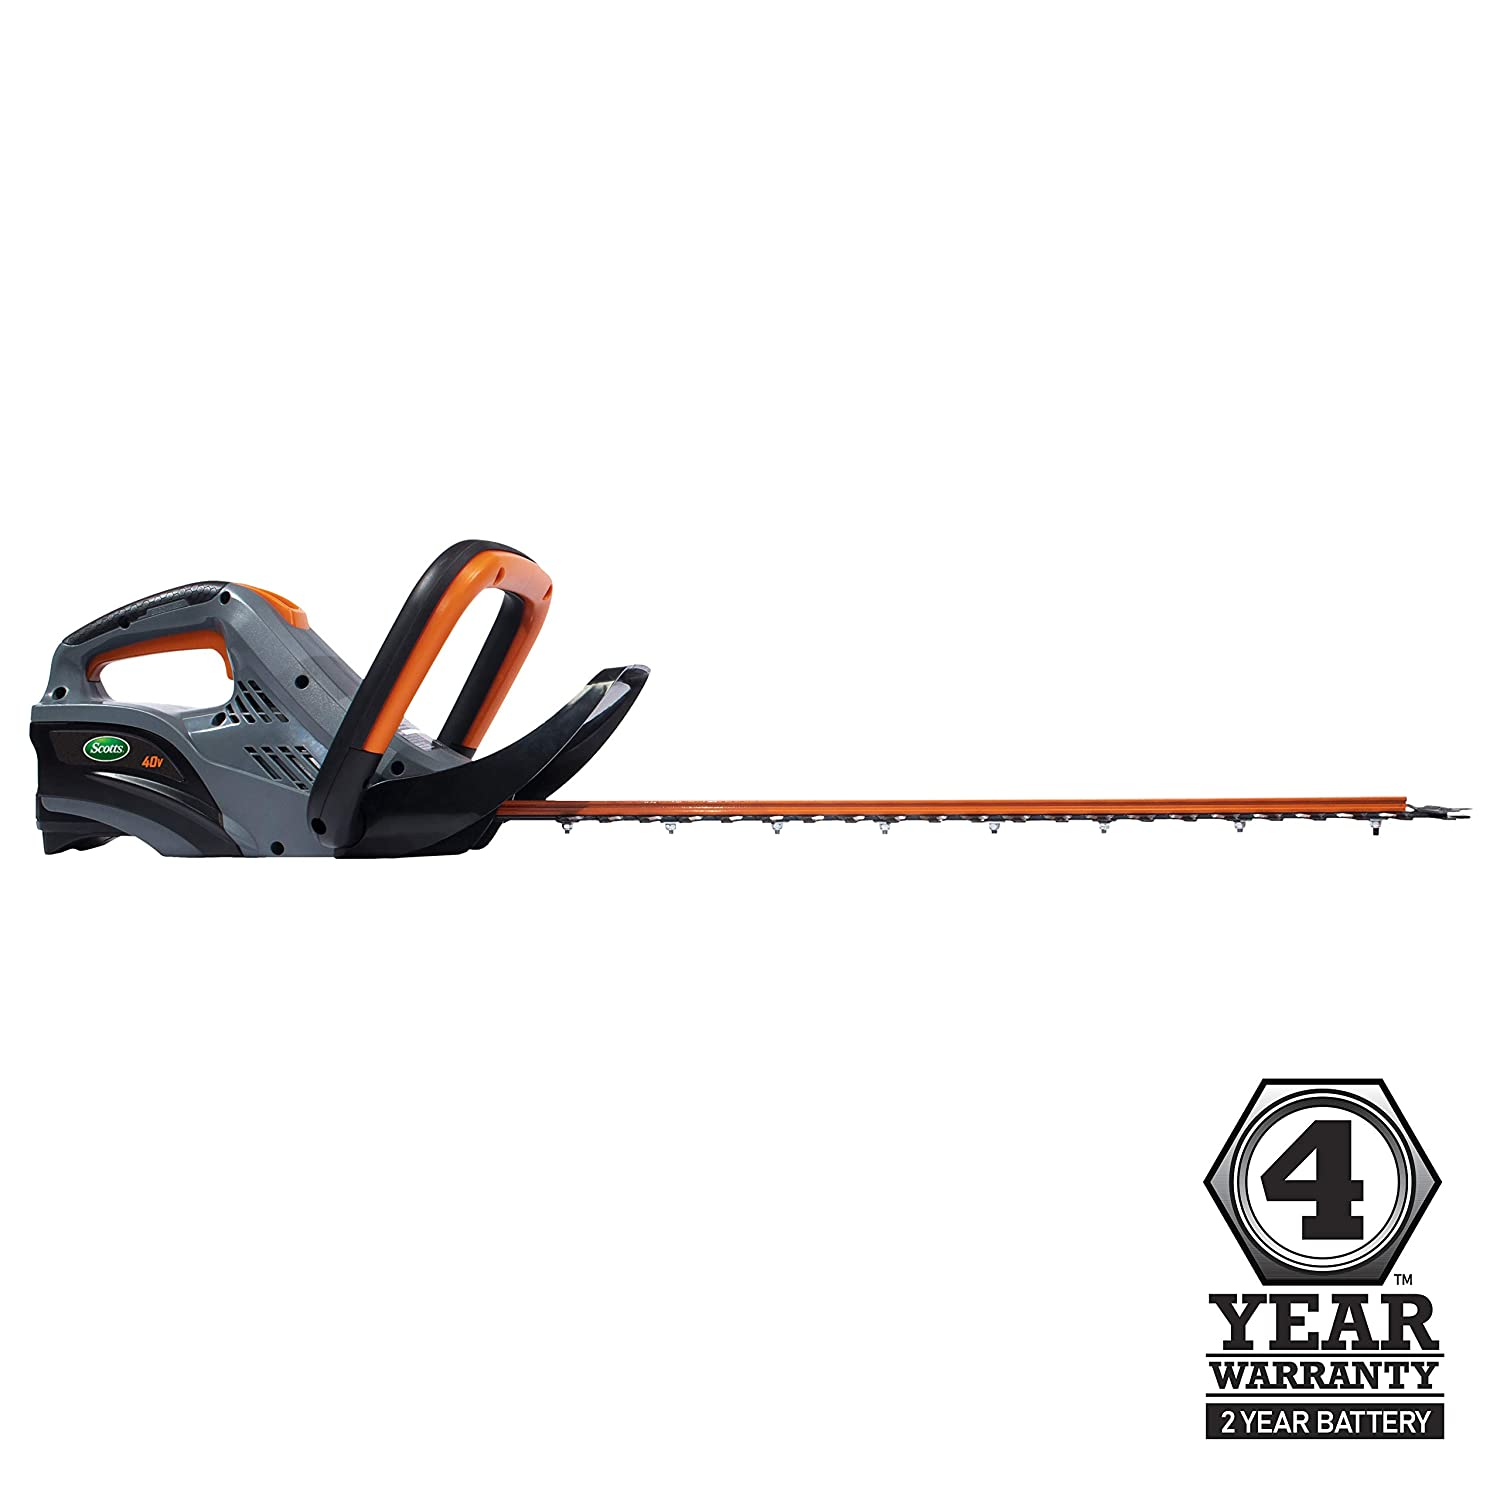 Scotts Outdoor Power Tools LHT12440S 40-Volt 24-Inch Cordless Hedge Trimmer, 2Ah Battery Fast Charger Included